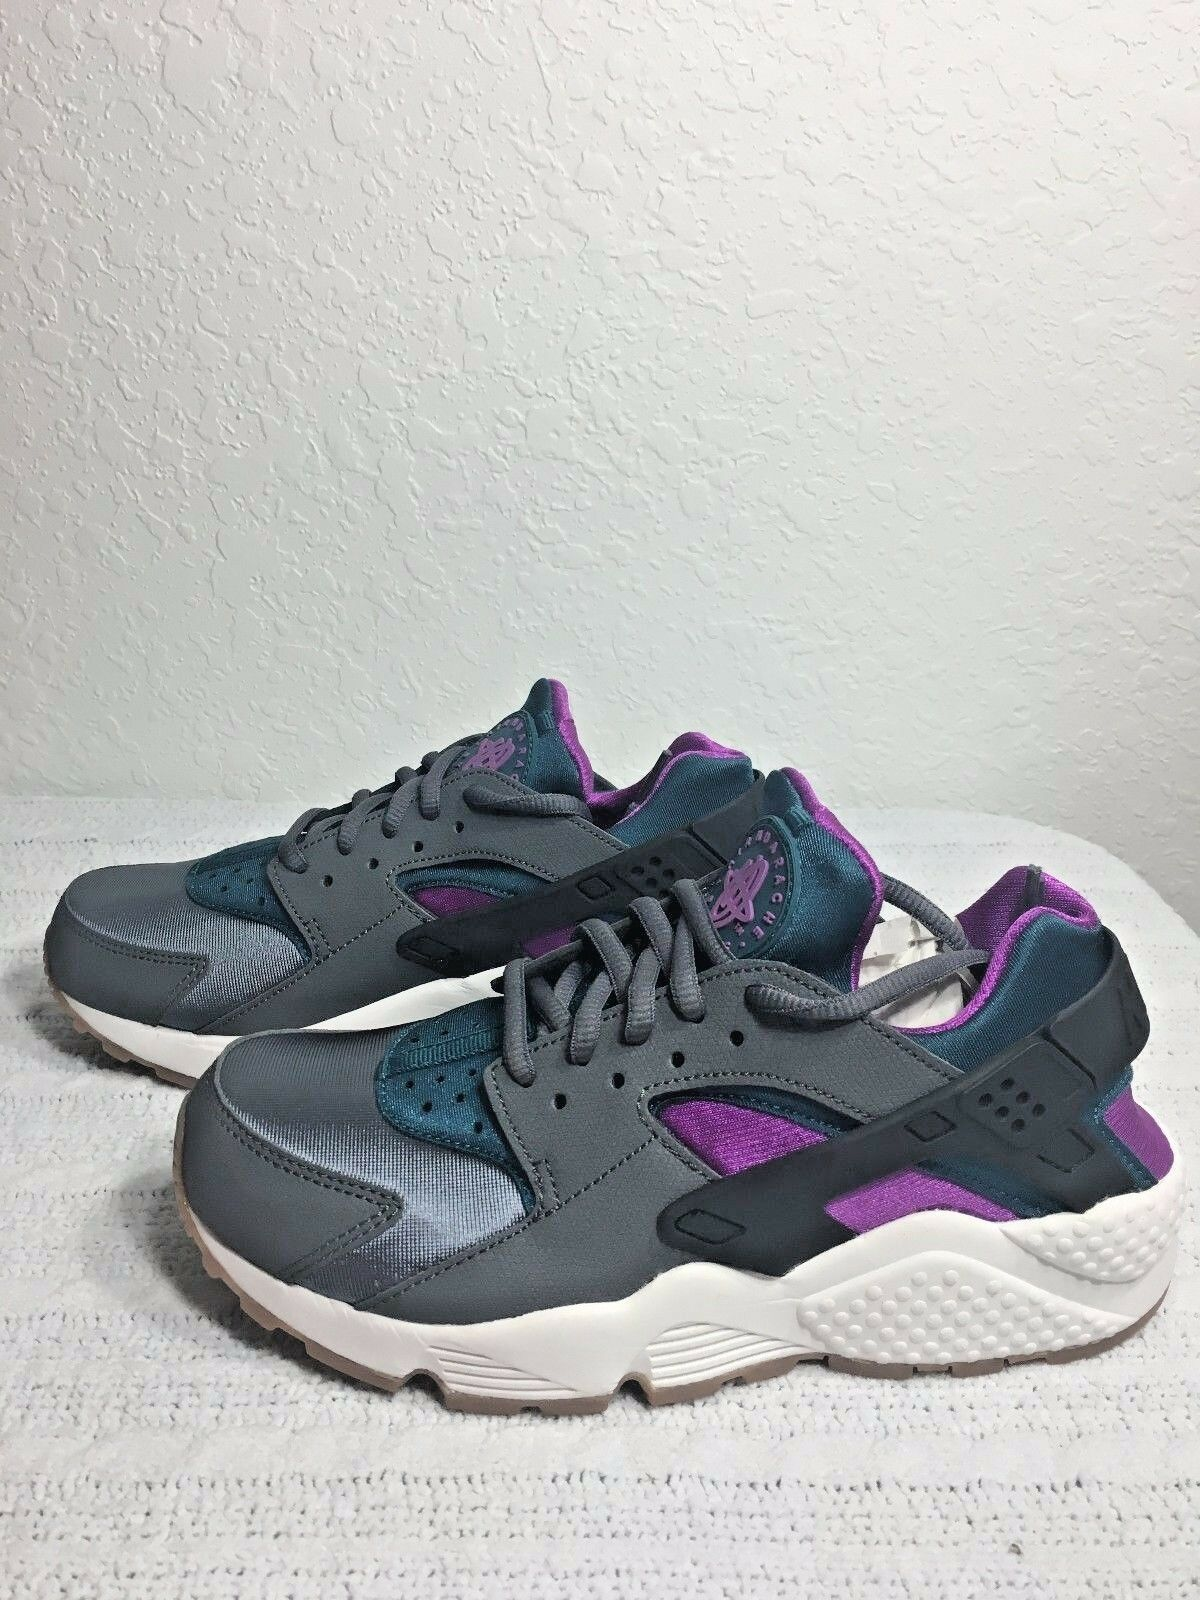 NIKE AIR HUARACHE RUN GREY/TEAL WOMEN SIZE 6.5 NEW 634835 016